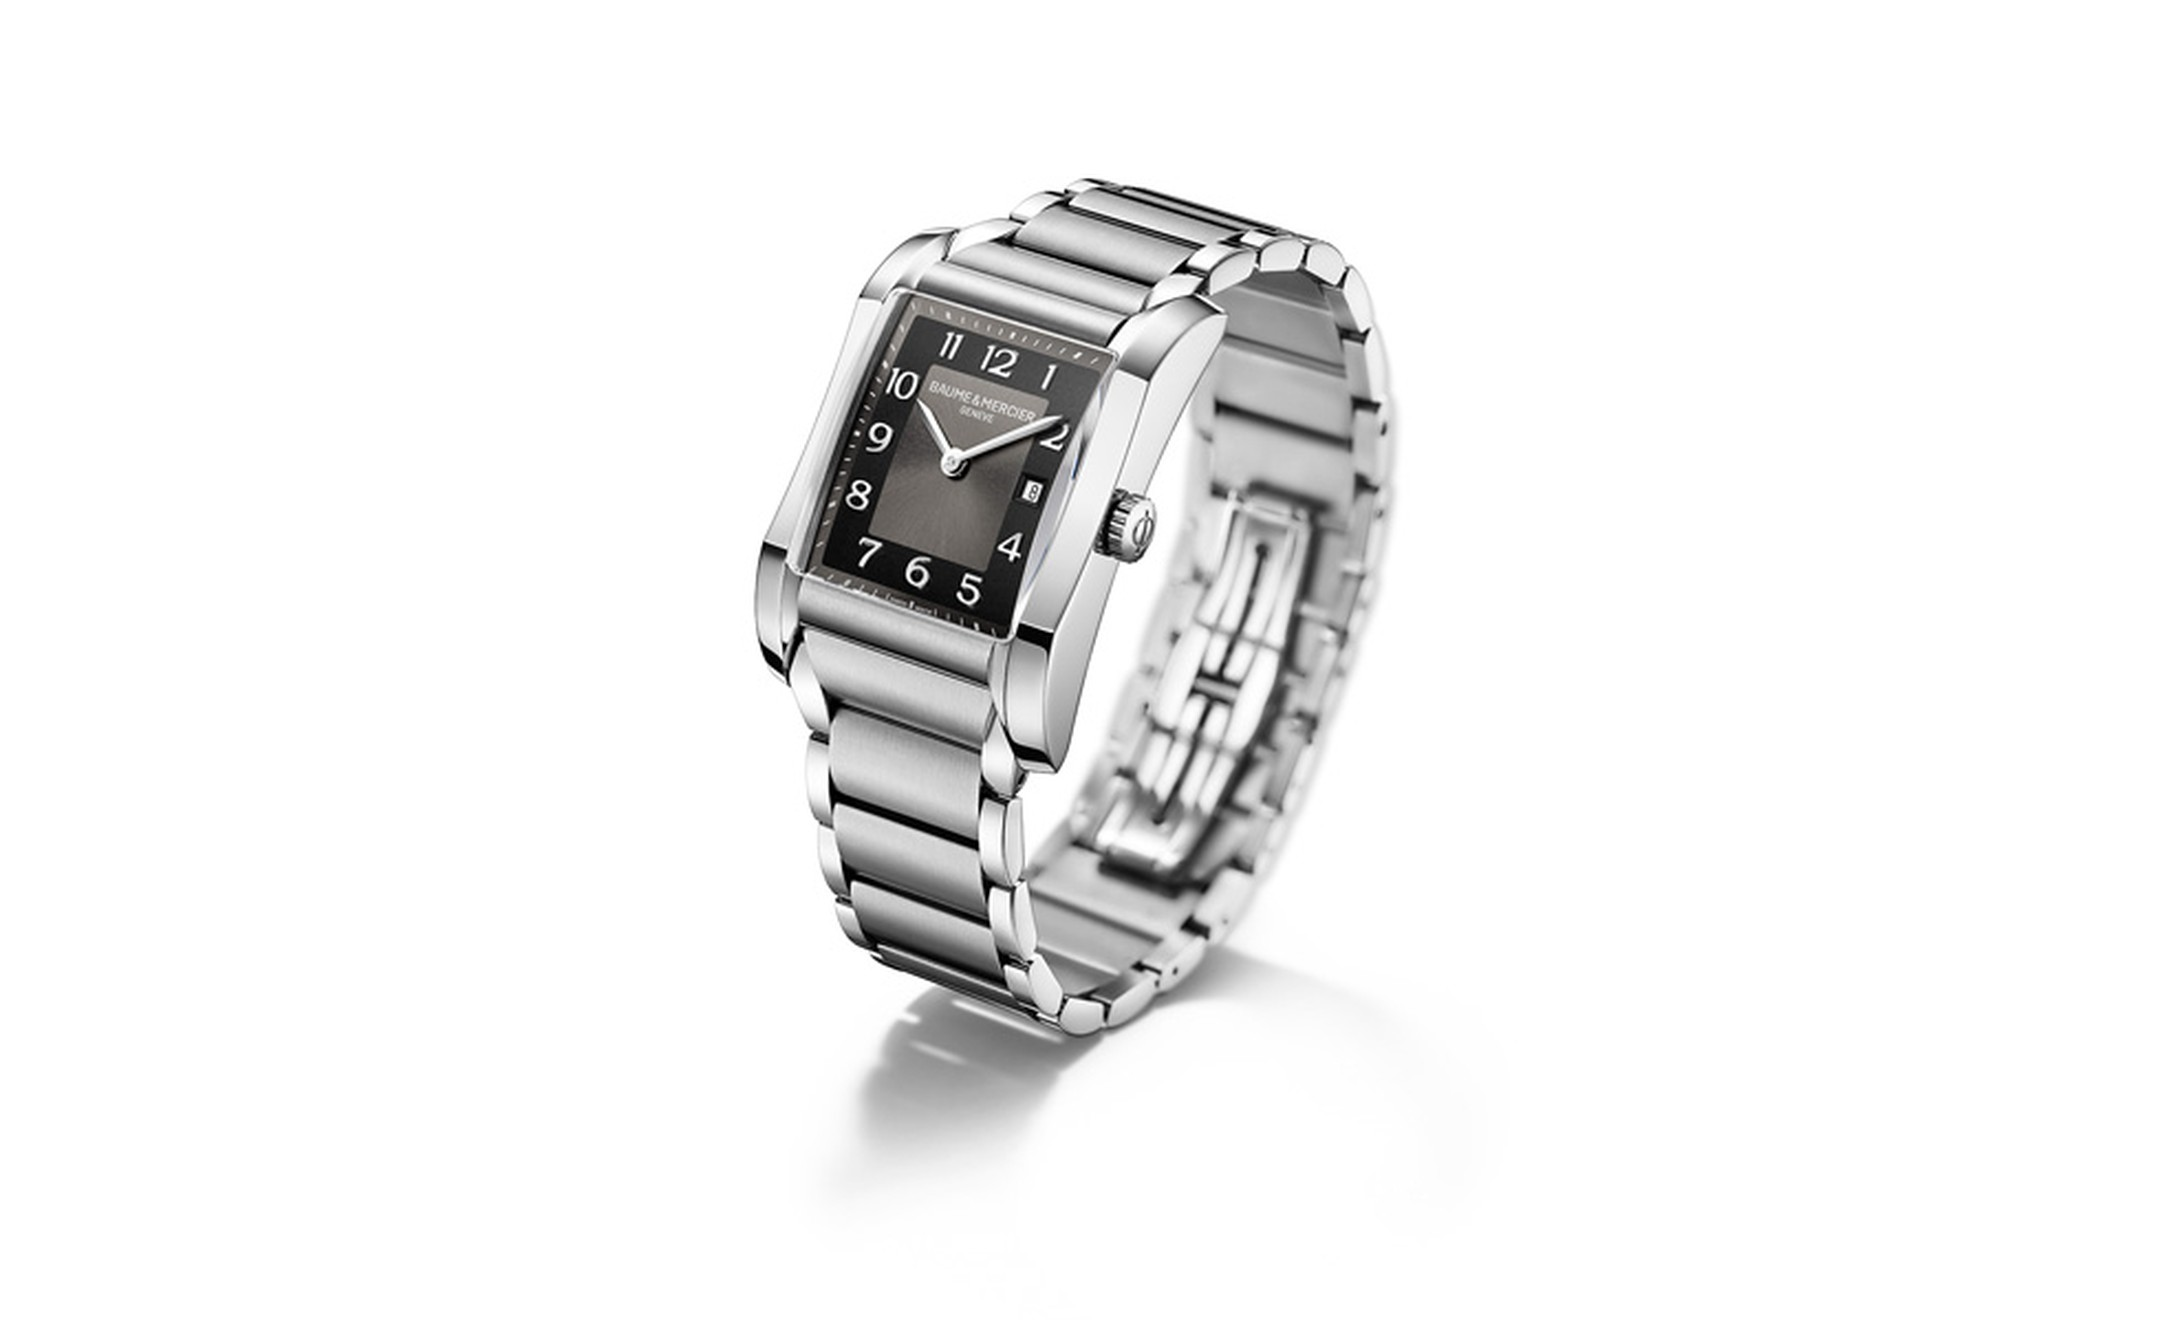 Baume et Mercier Hampton for women: stainless steel case with stainless steel bracelet and quartz movement. £1,860